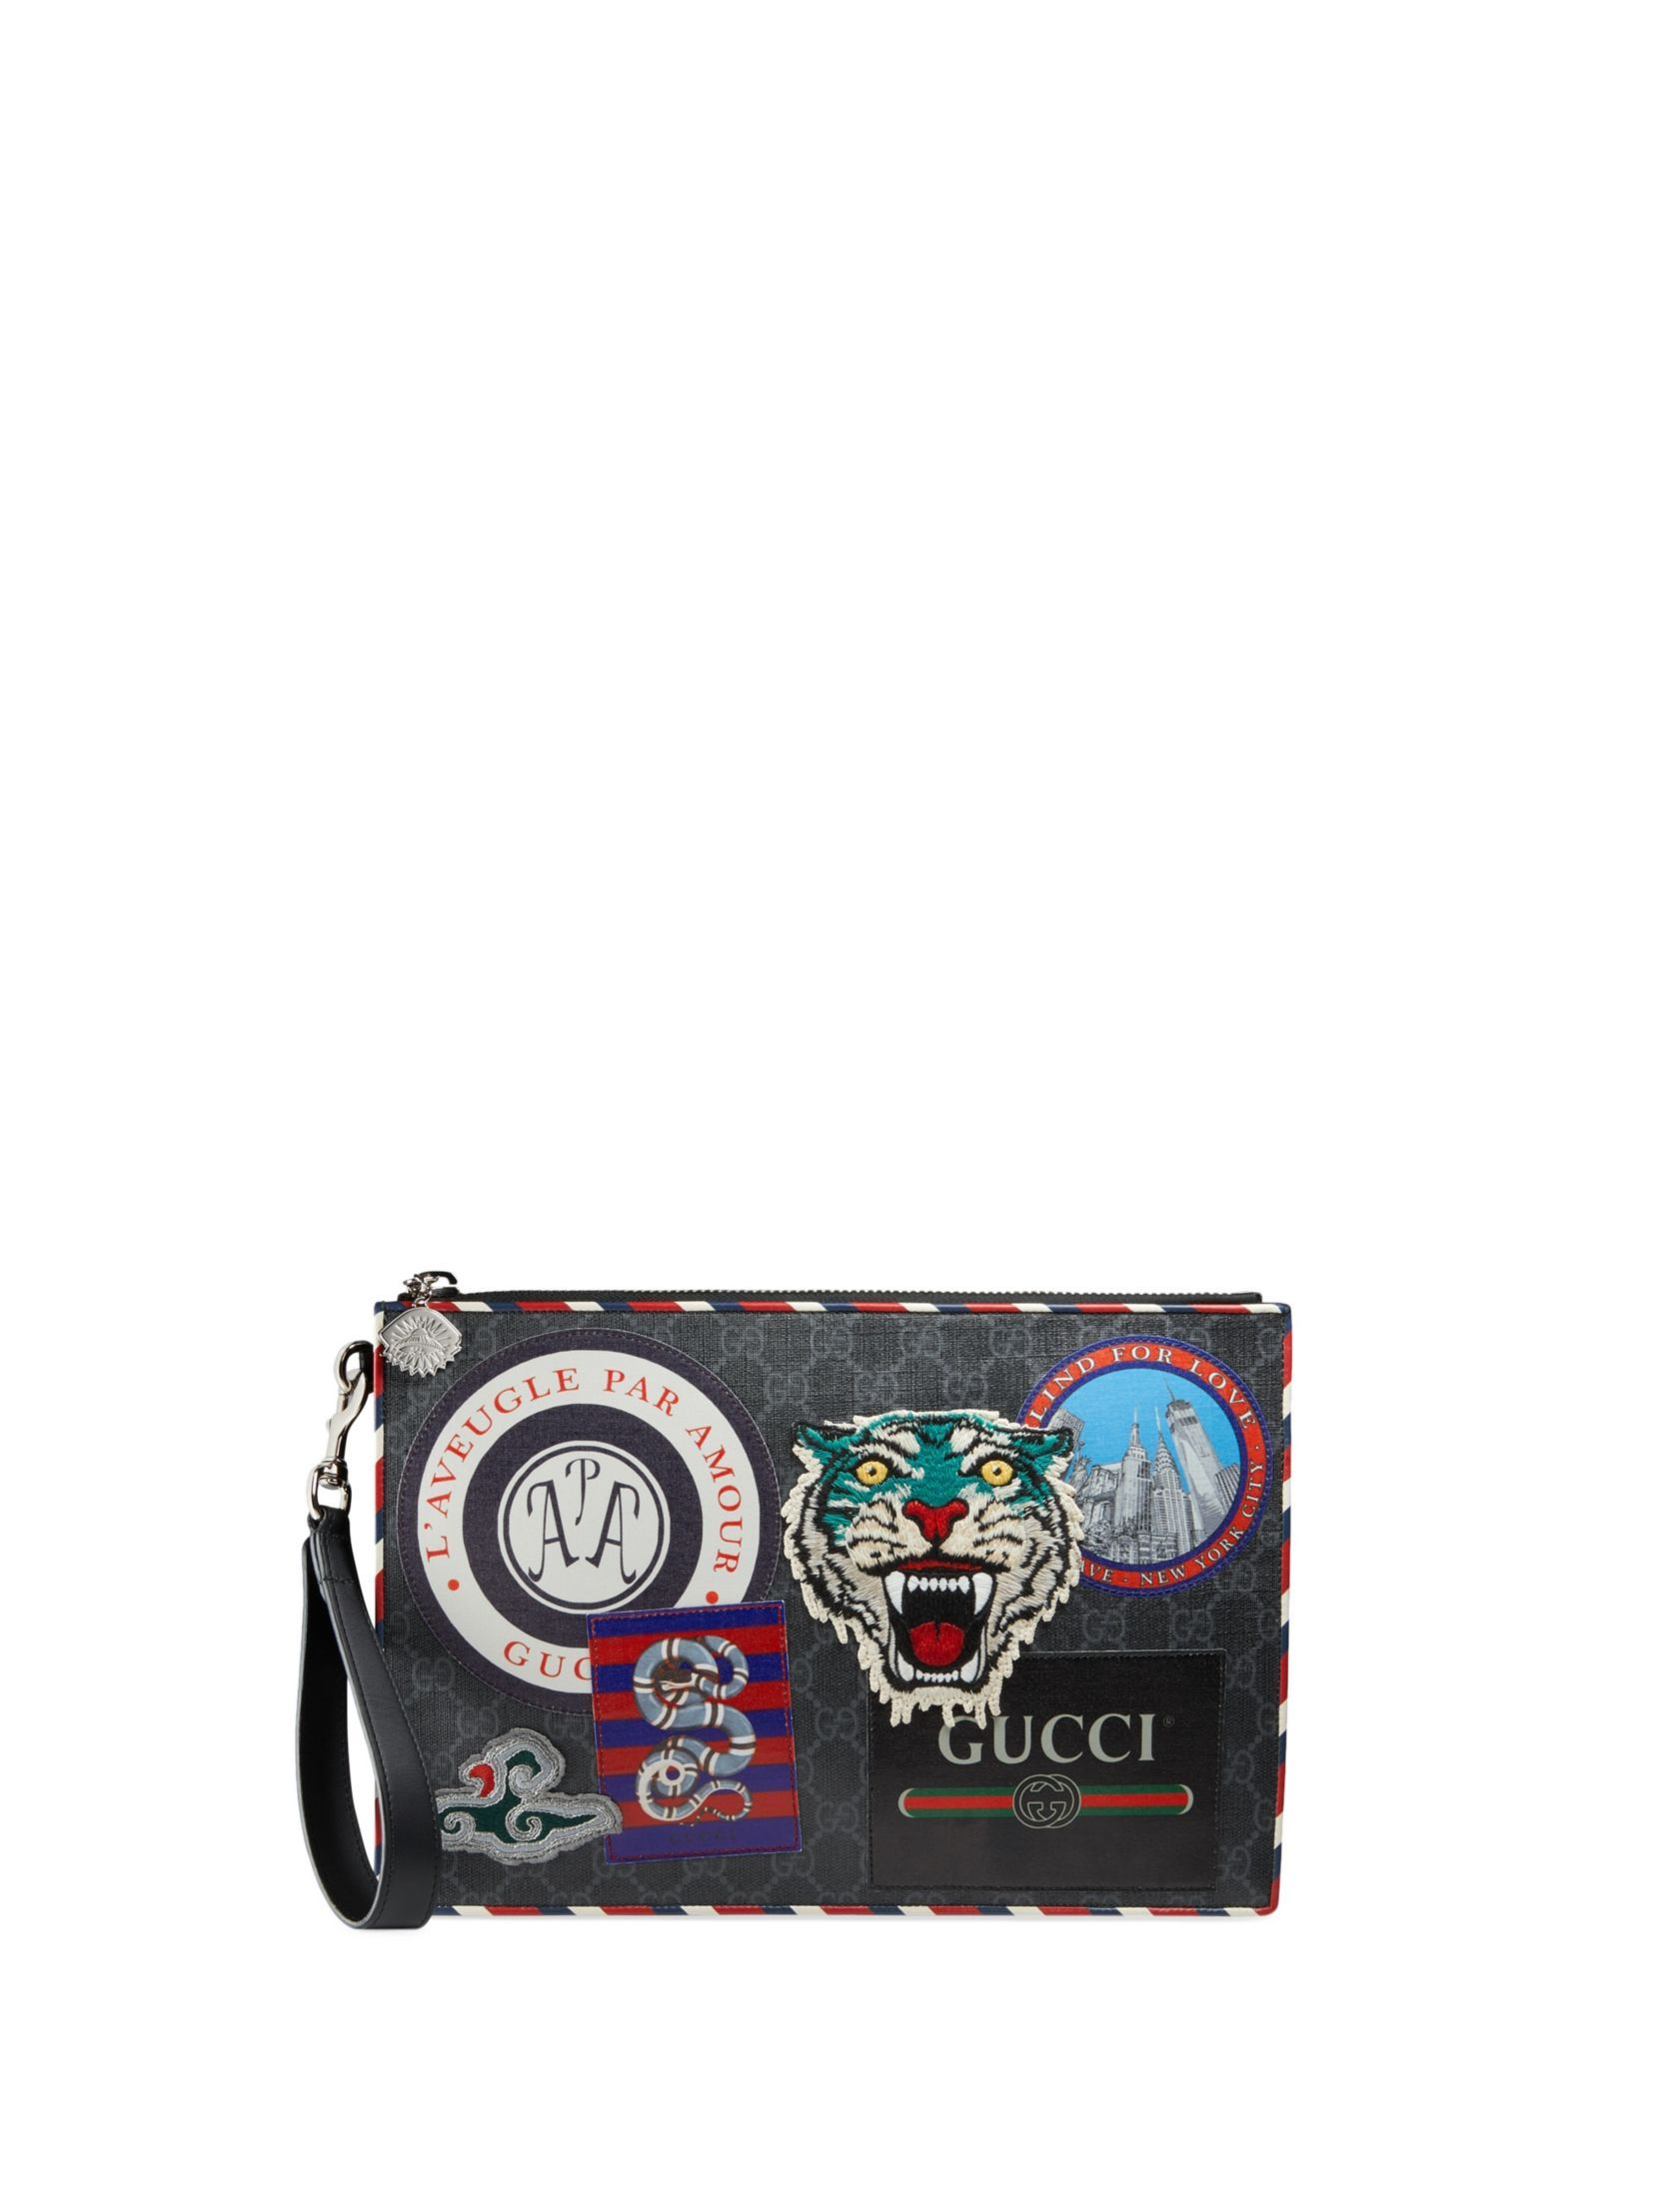 93a21672c5d76 Gucci Night Courrier GG Supreme Pouch